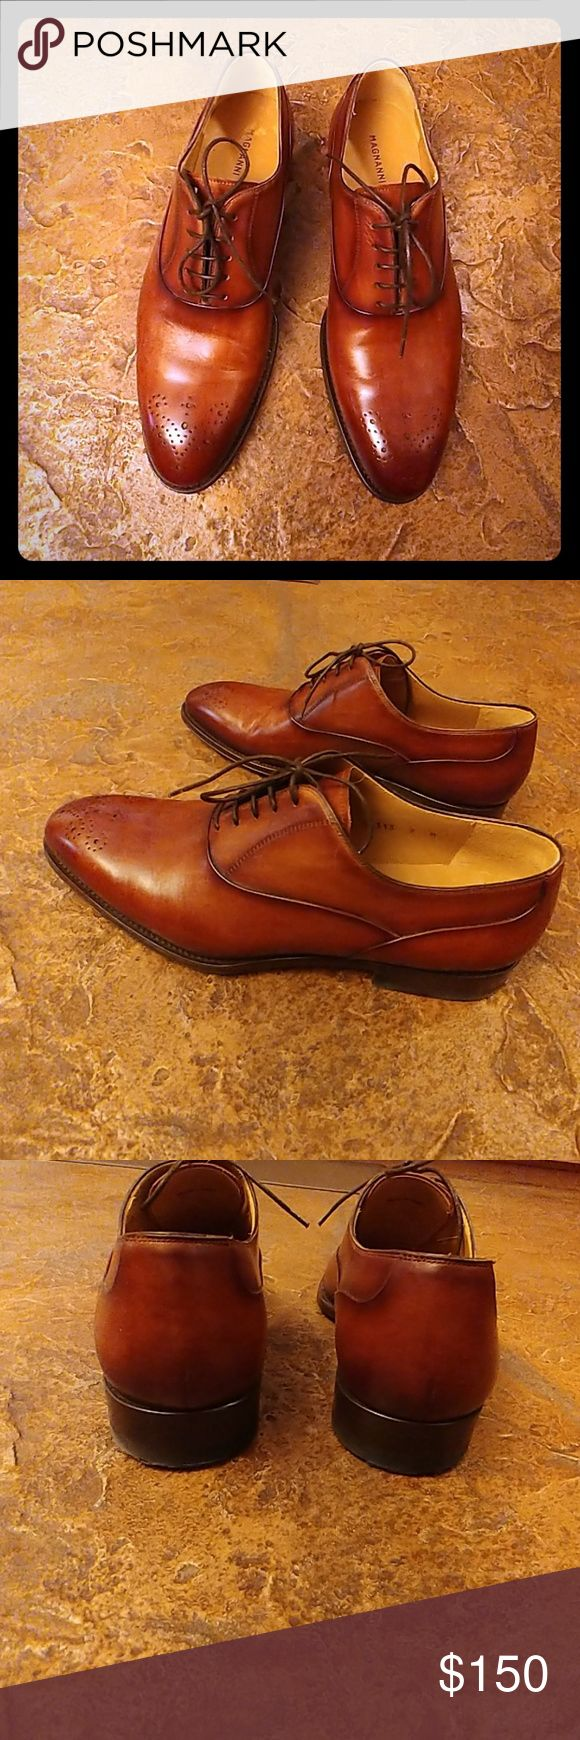 Magnanni mens shoes Made in Spain , size 9  42M. Very good condition as seen in ...